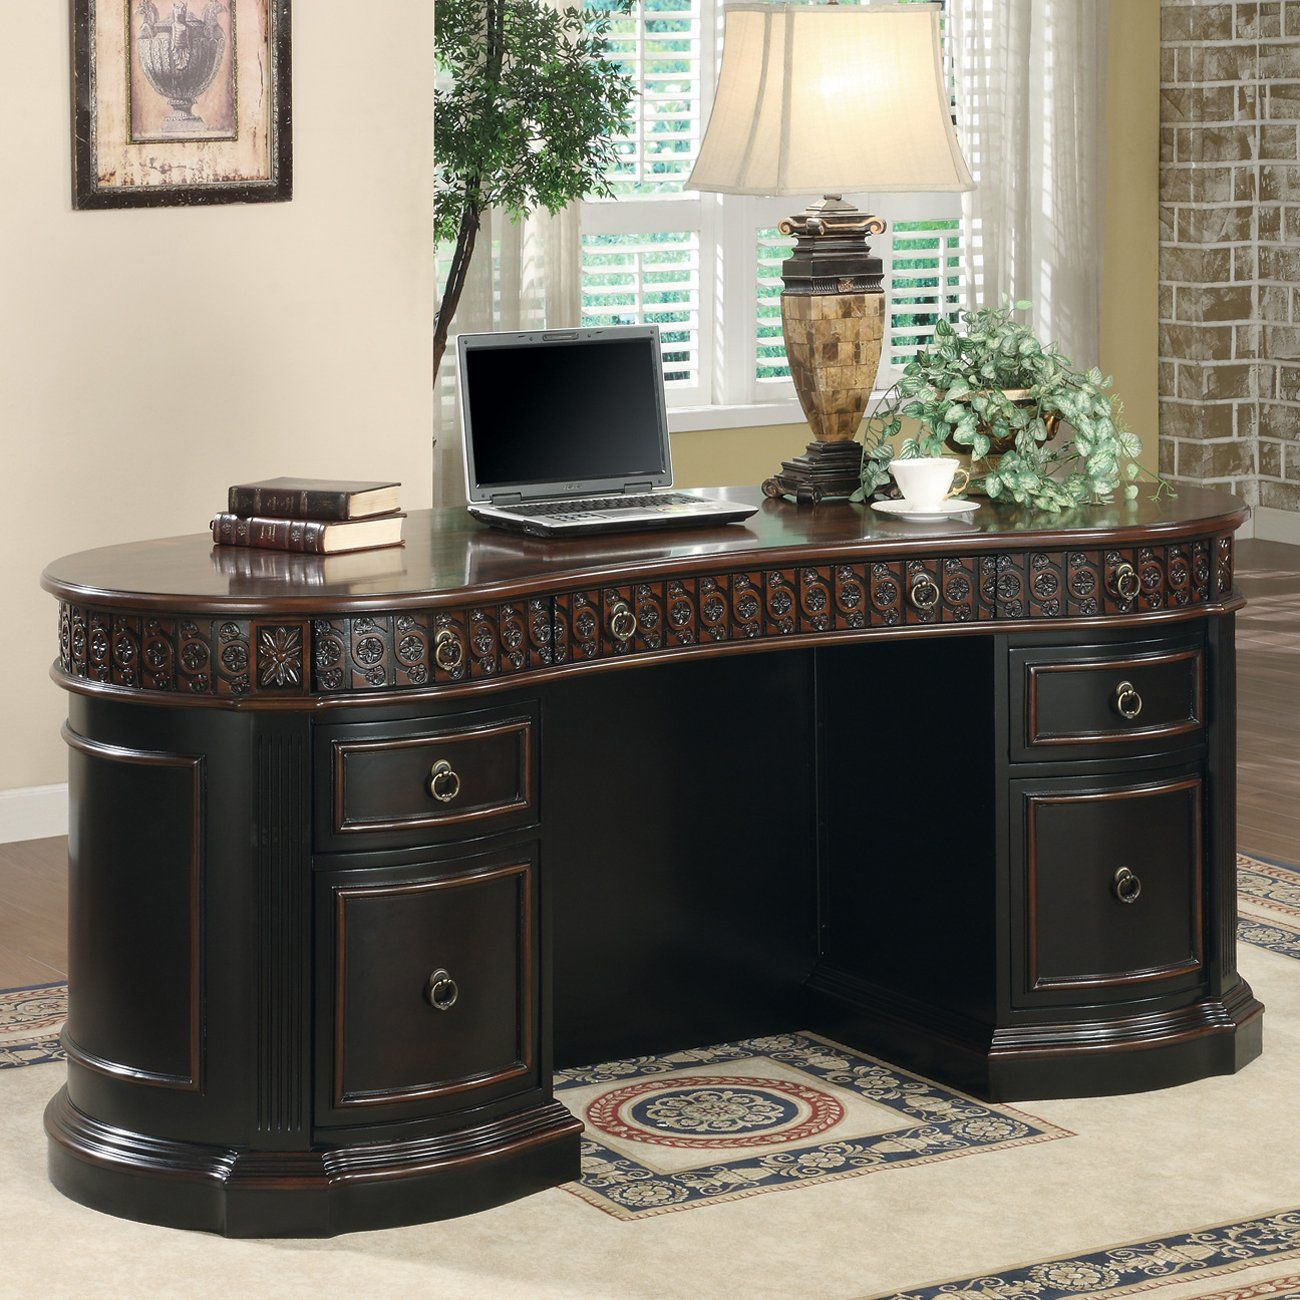 shop home office. Coaster Fine Furniture 800921 Rowan Desk | The Mine. Home Office Shop